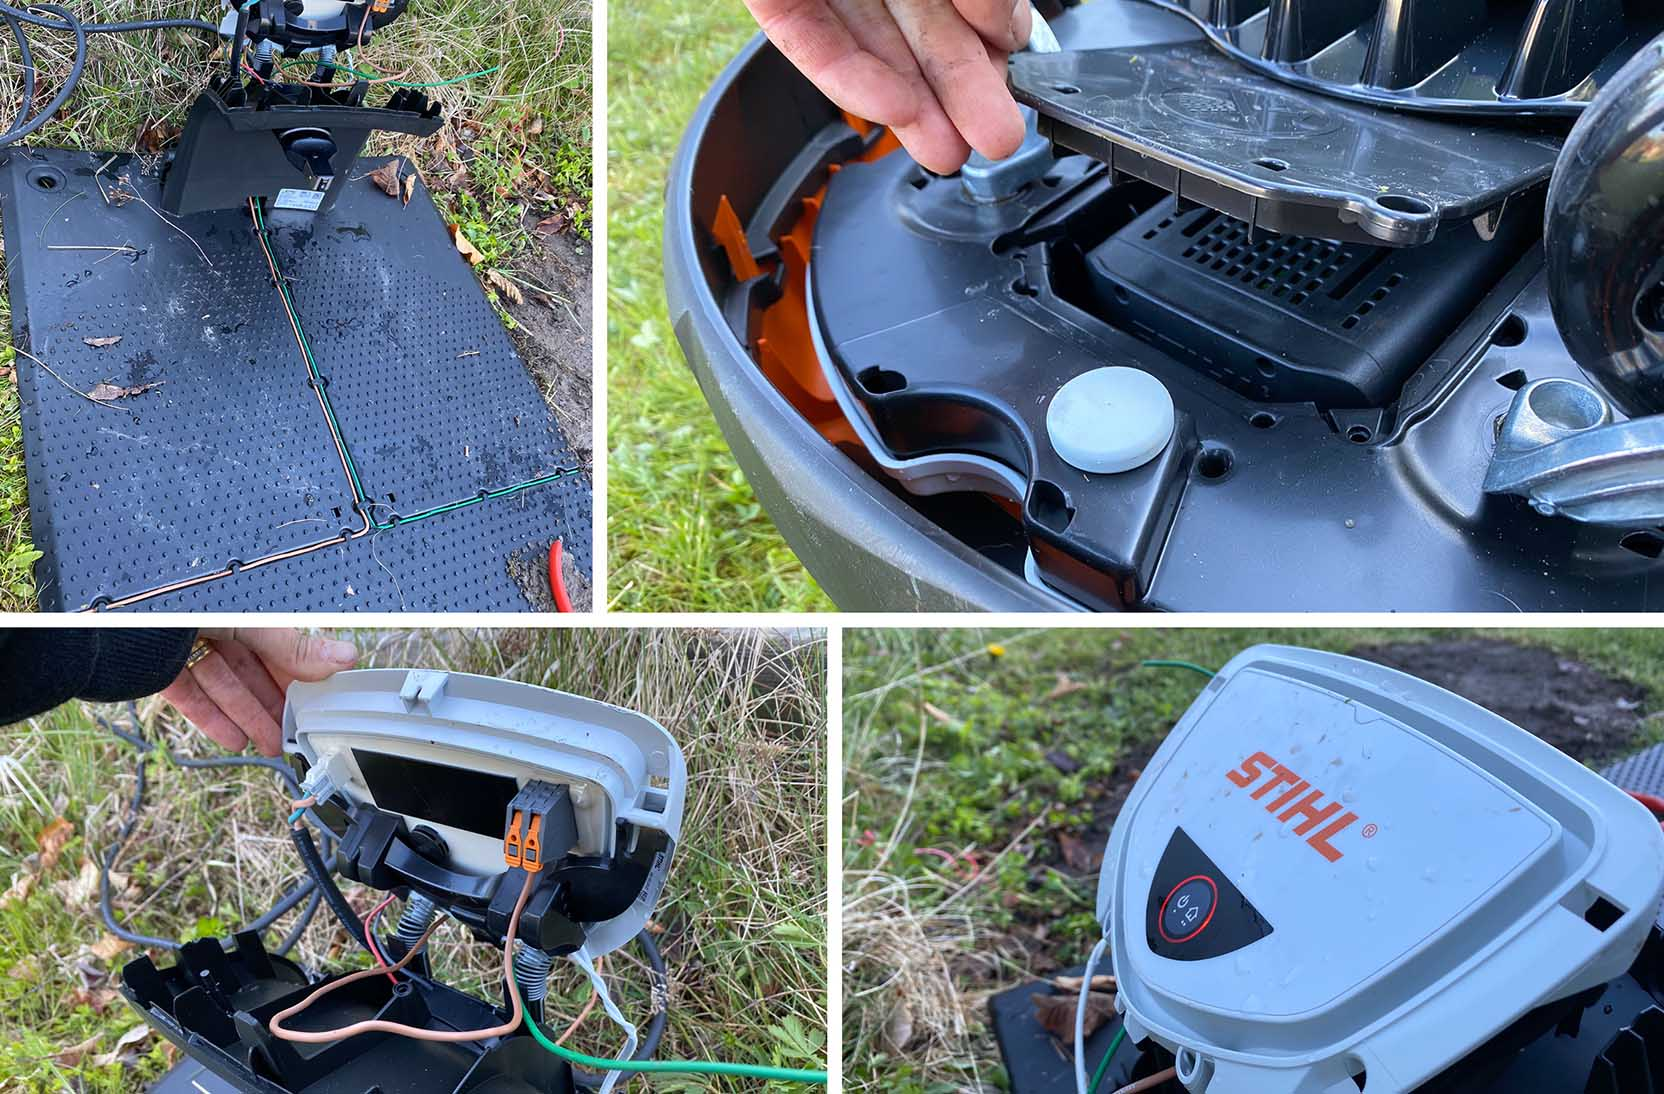 The installation process for the Stihl RMI 632 PC isn't particularly complicated, but it's also rather outdated